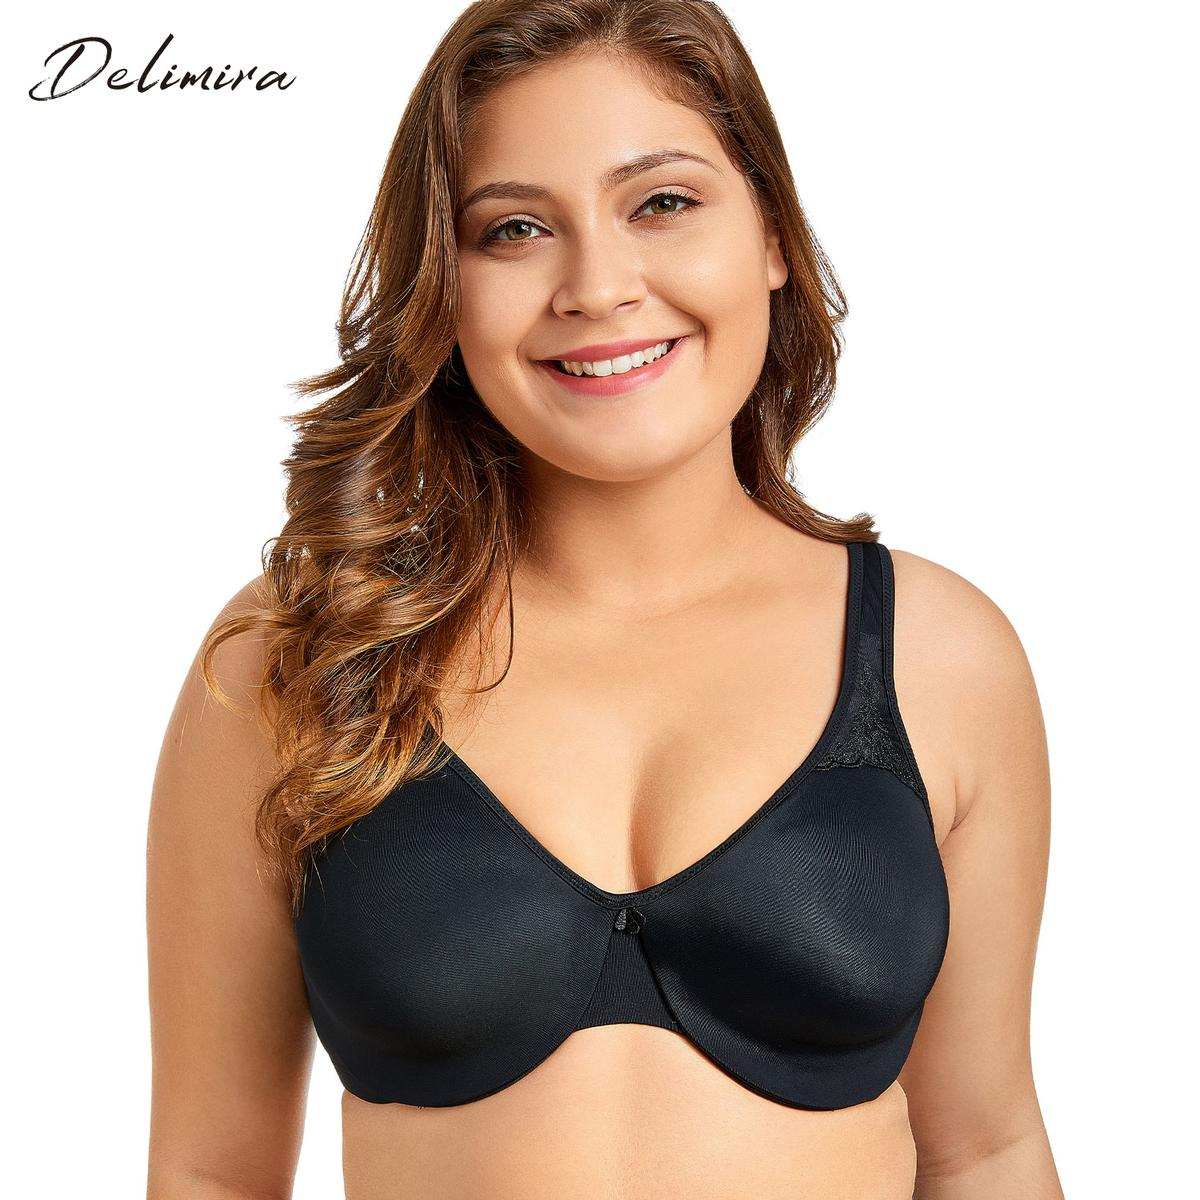 1caaa59324 Delimira Women S Smooth Full Figure Underwire Seamless Minimizer  Comfortable Bra C18110301 Canada 2019 From Lizhang03